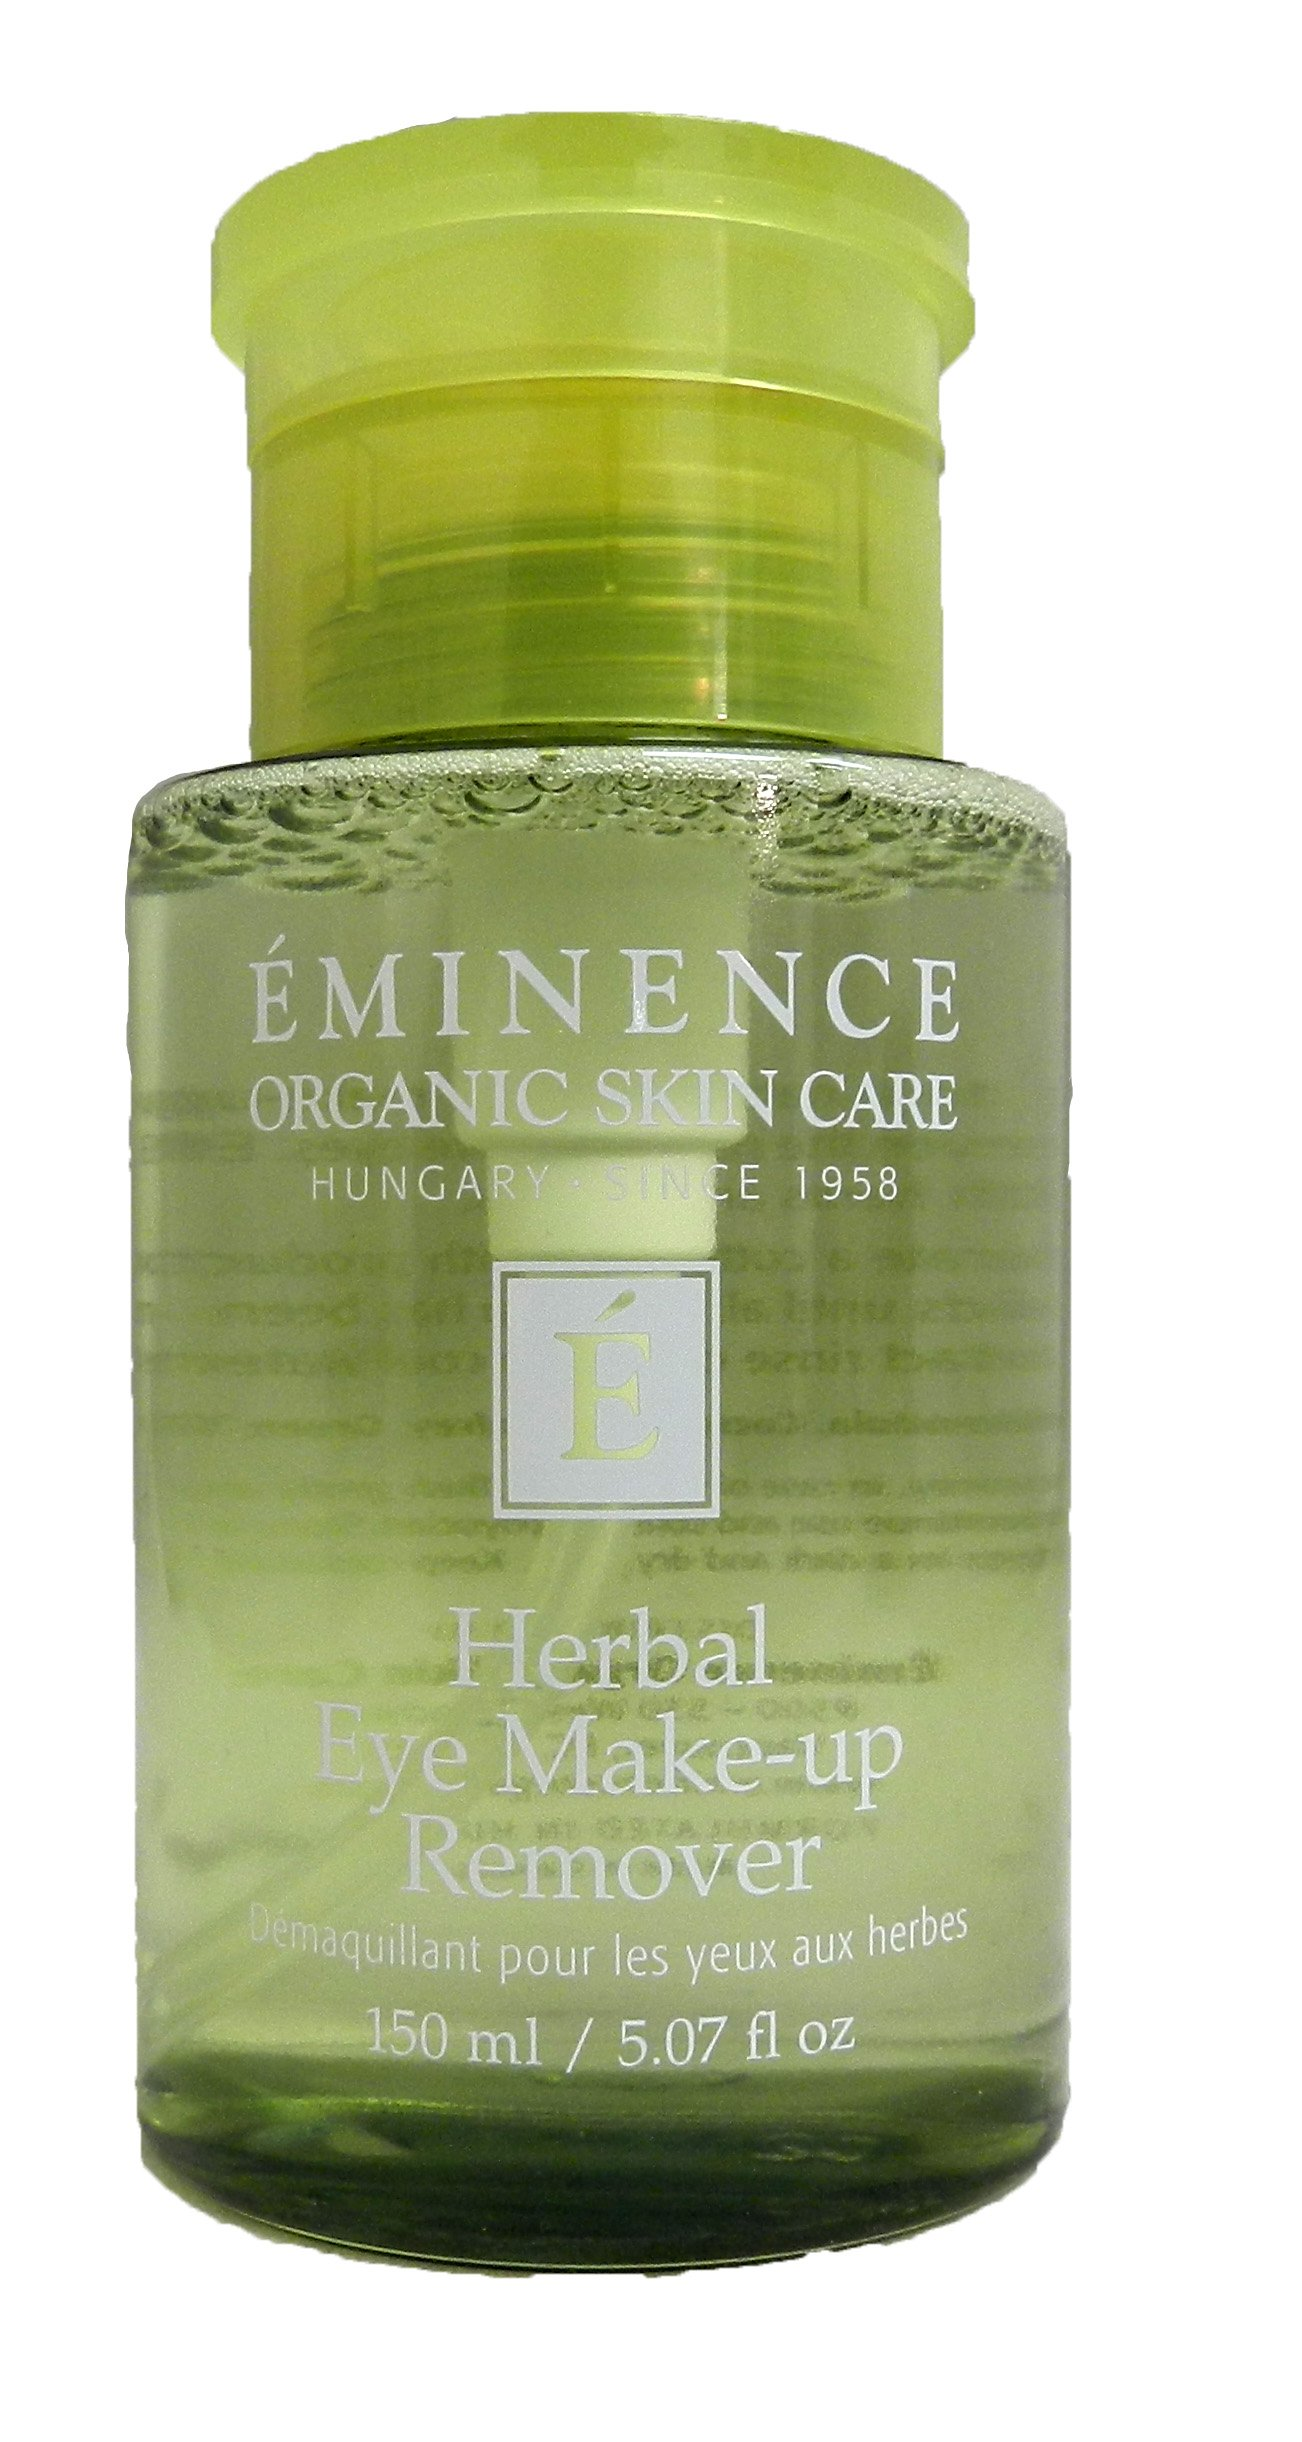 Eminence Herbal Eye Make-Up Remover, 5.07 Ounce